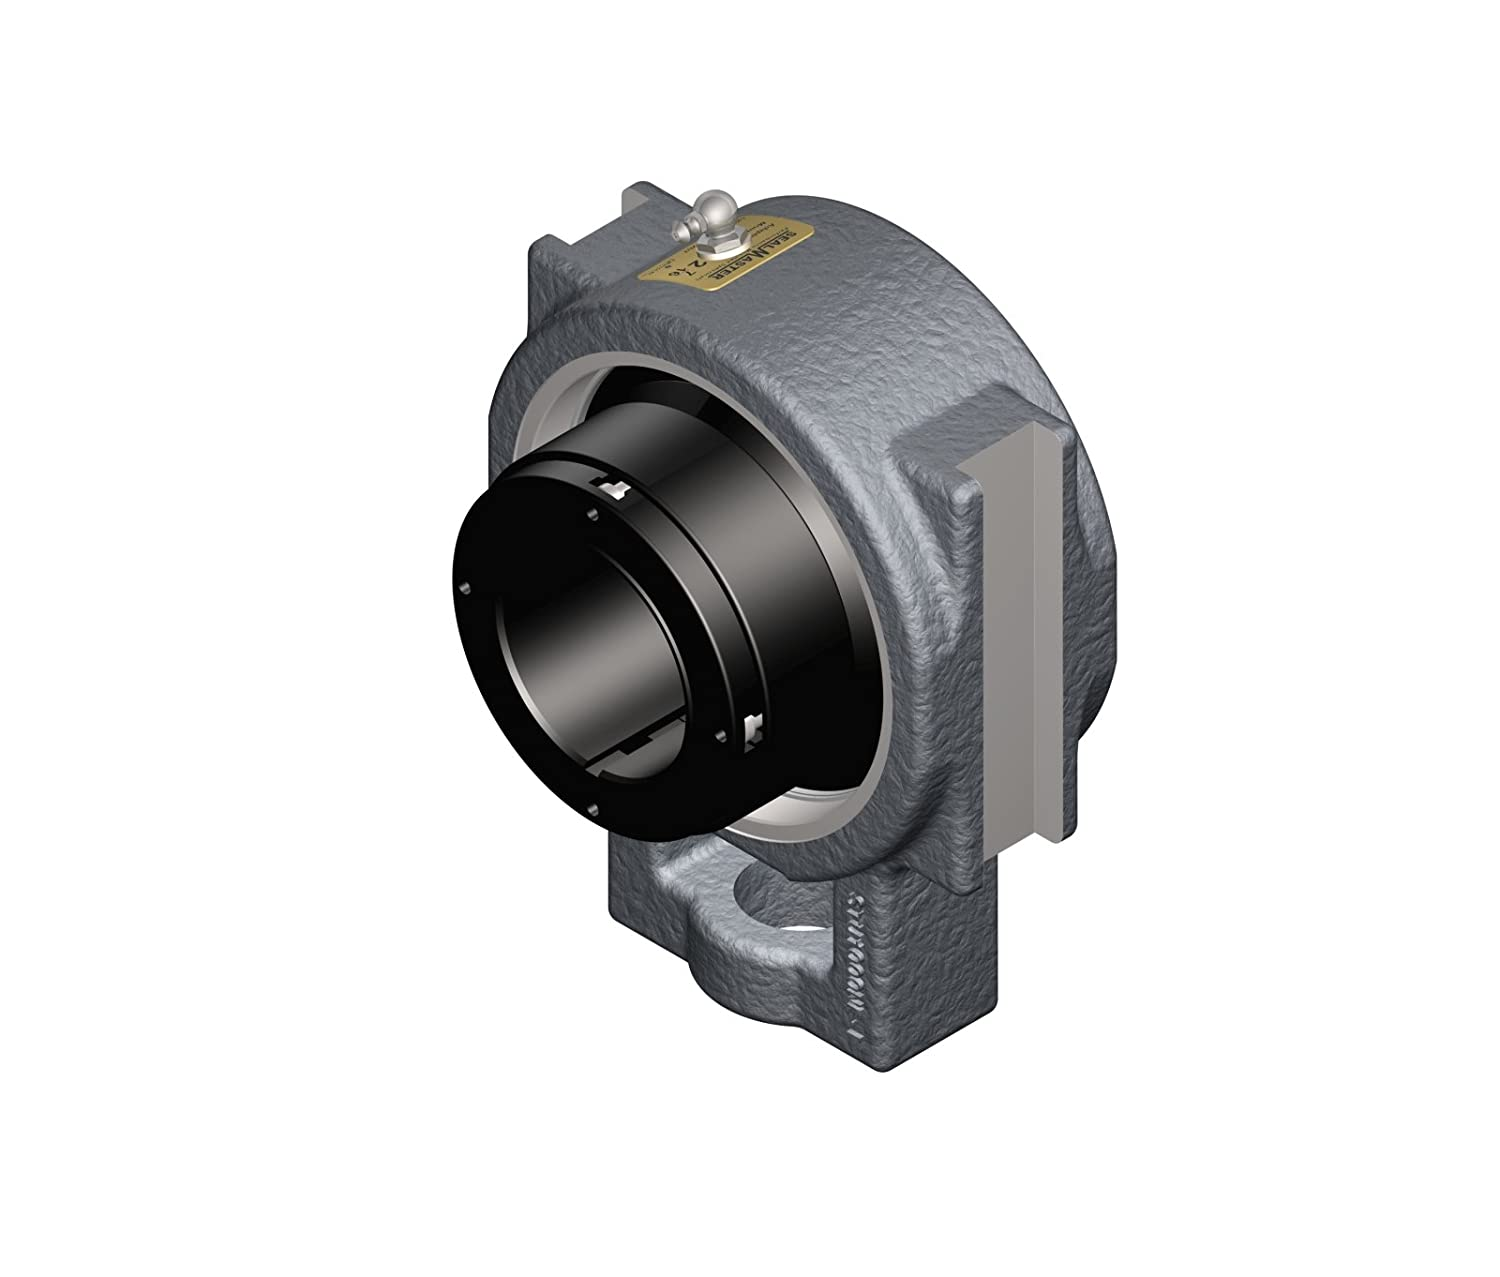 Take-Up Adapter Mount 2 Shaft Diameter Sealmaster USTU5000A-200 Unitized Spherical Split Cast Iron Roller Bearing 4.75 Width 2.000 ID